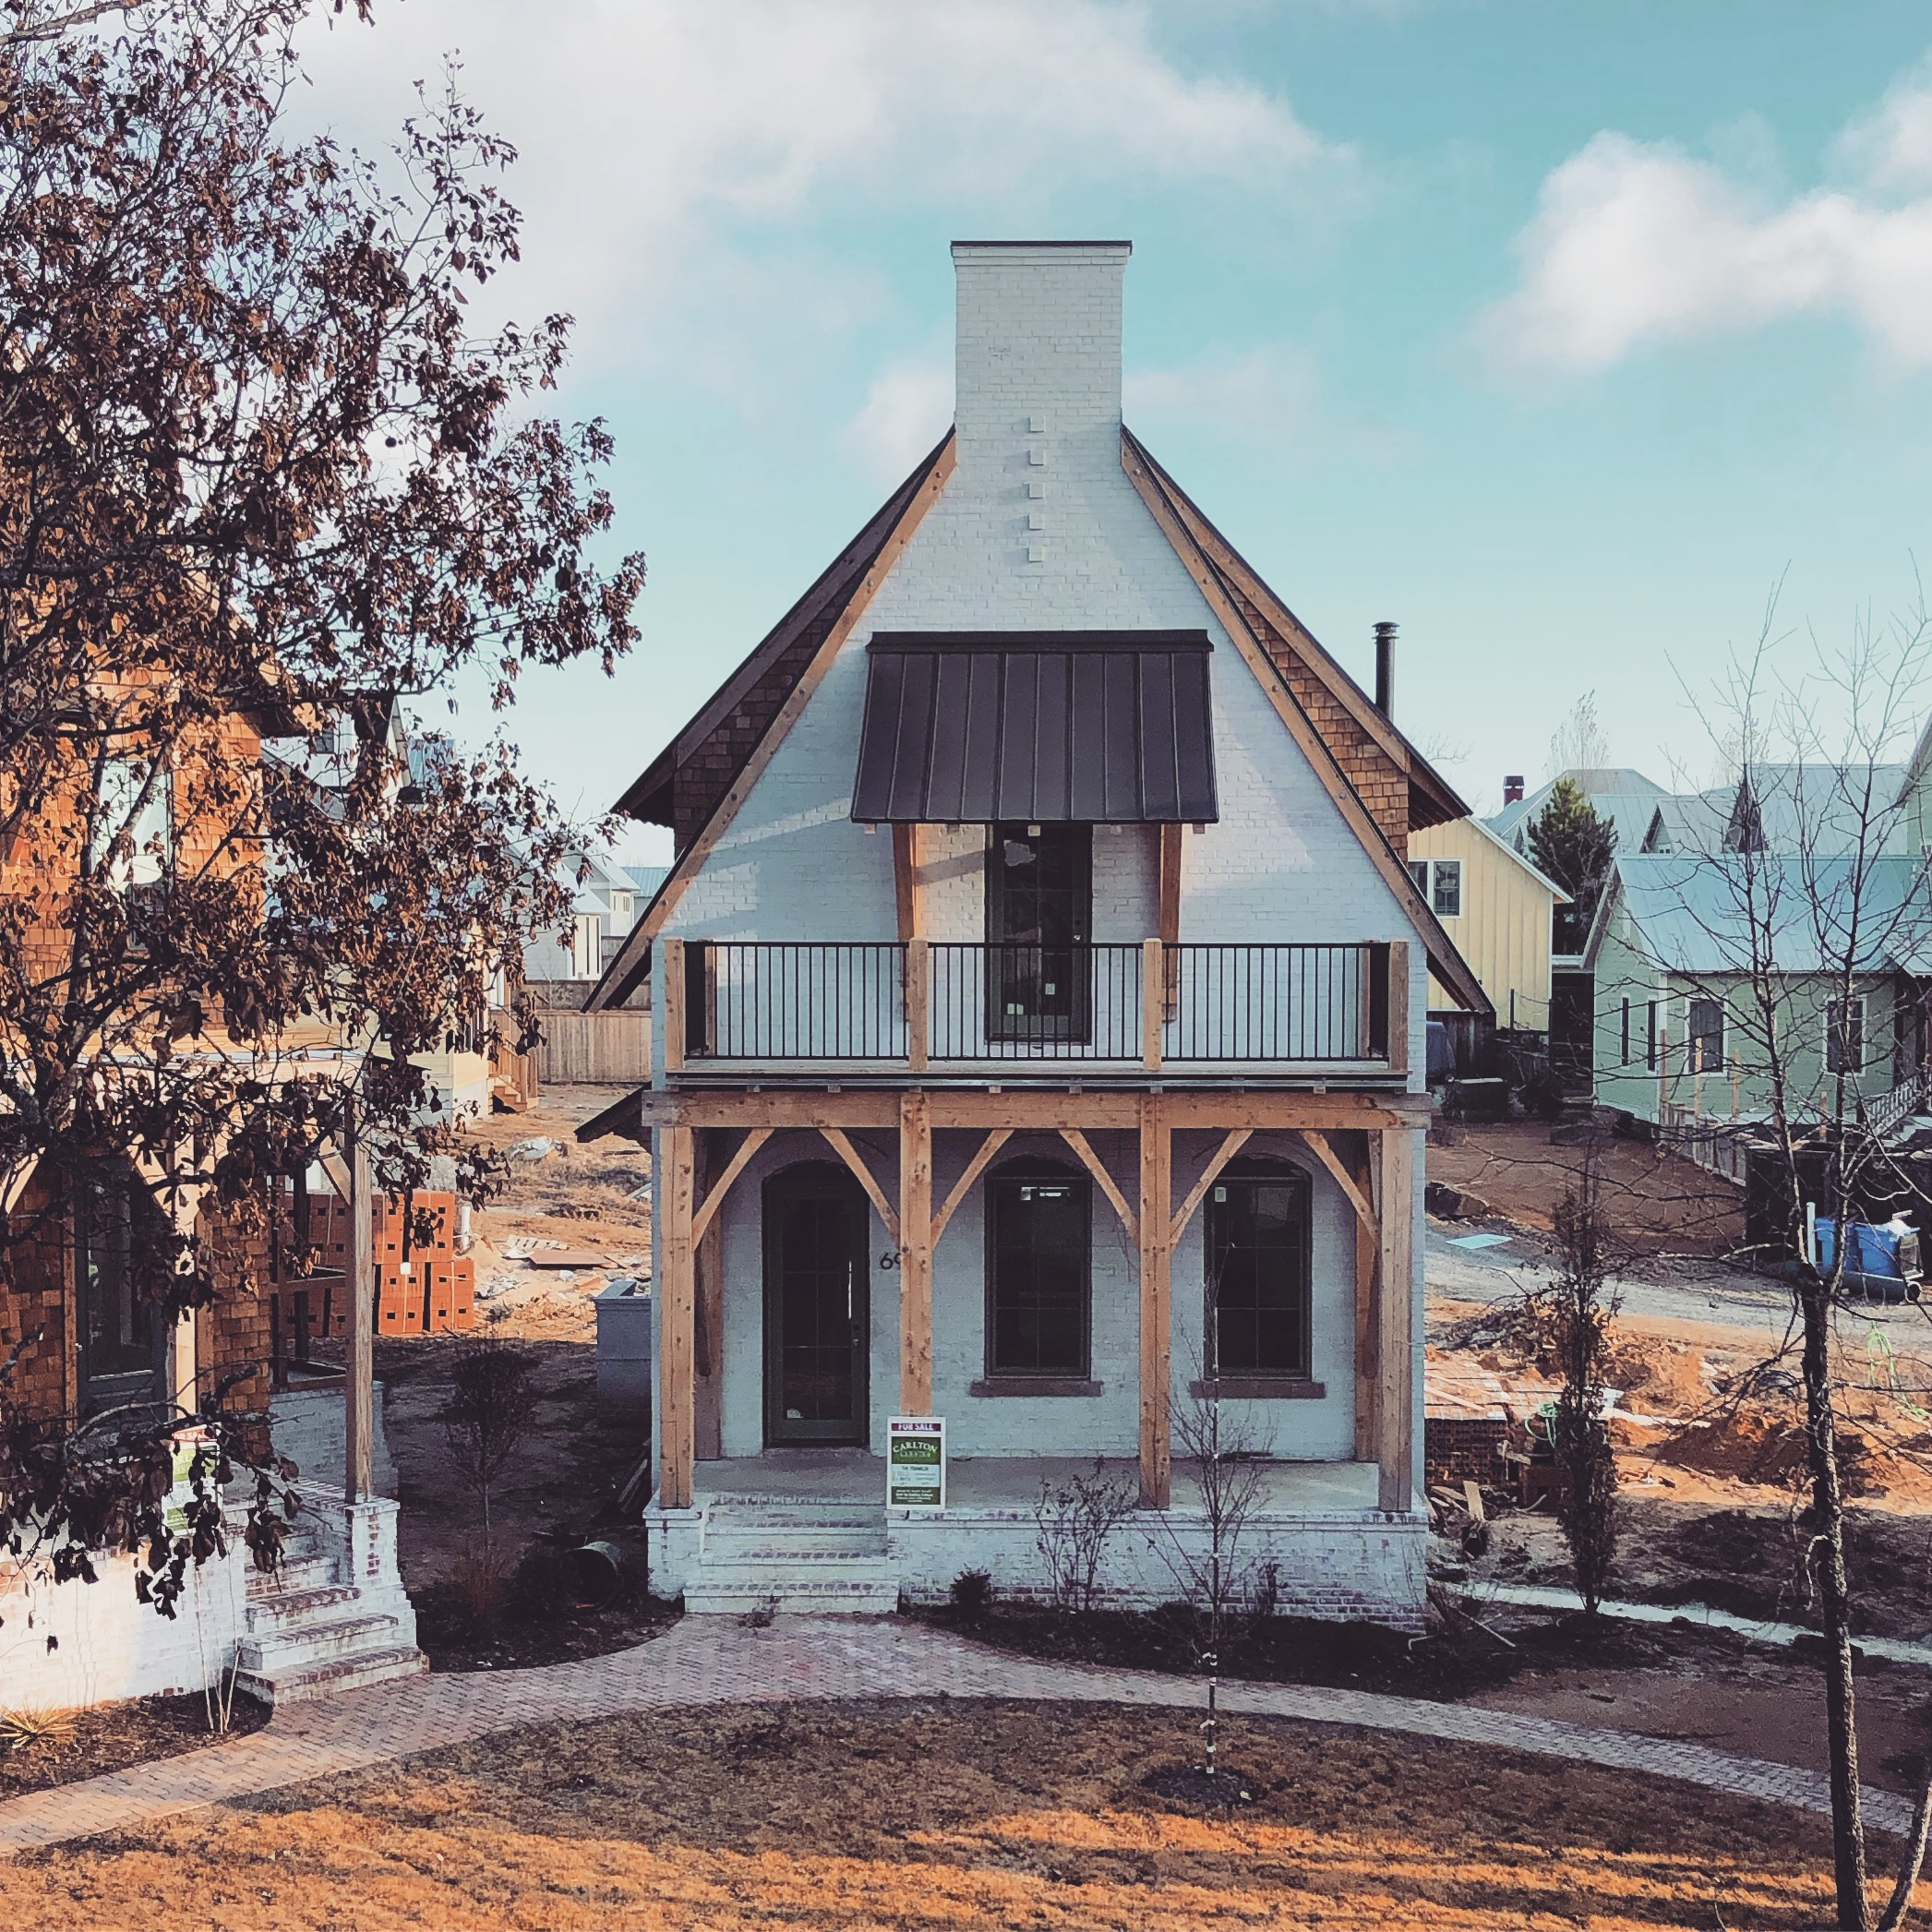 The Franklin - A Stuctural Brick Masonry Home in Carlton Landing OK - by Building Culture